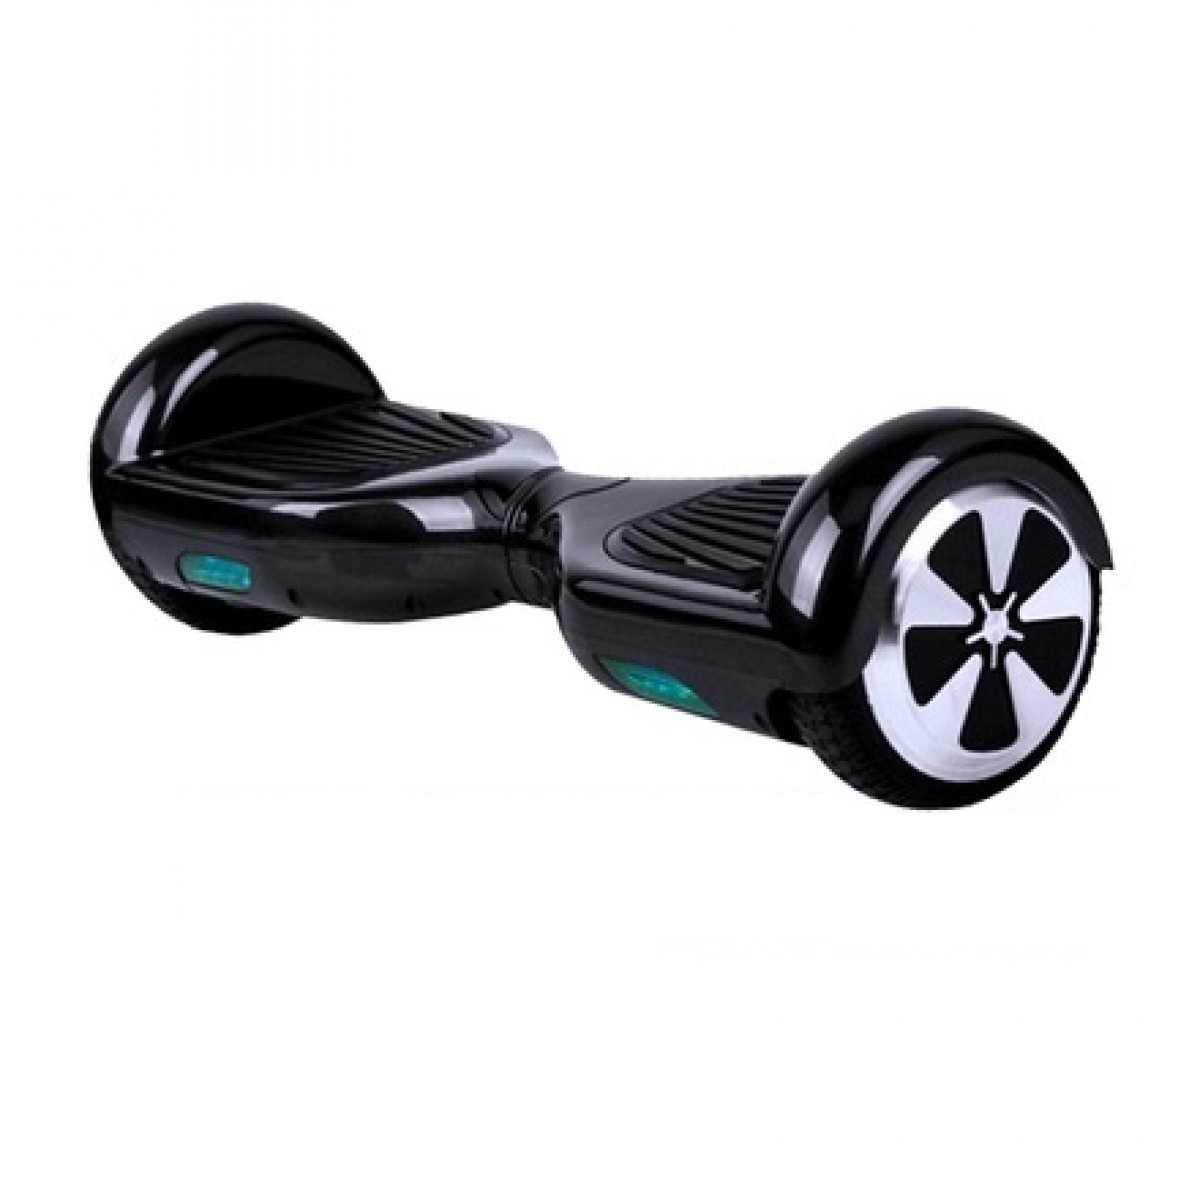 6.5 inch black smart hoverboard2